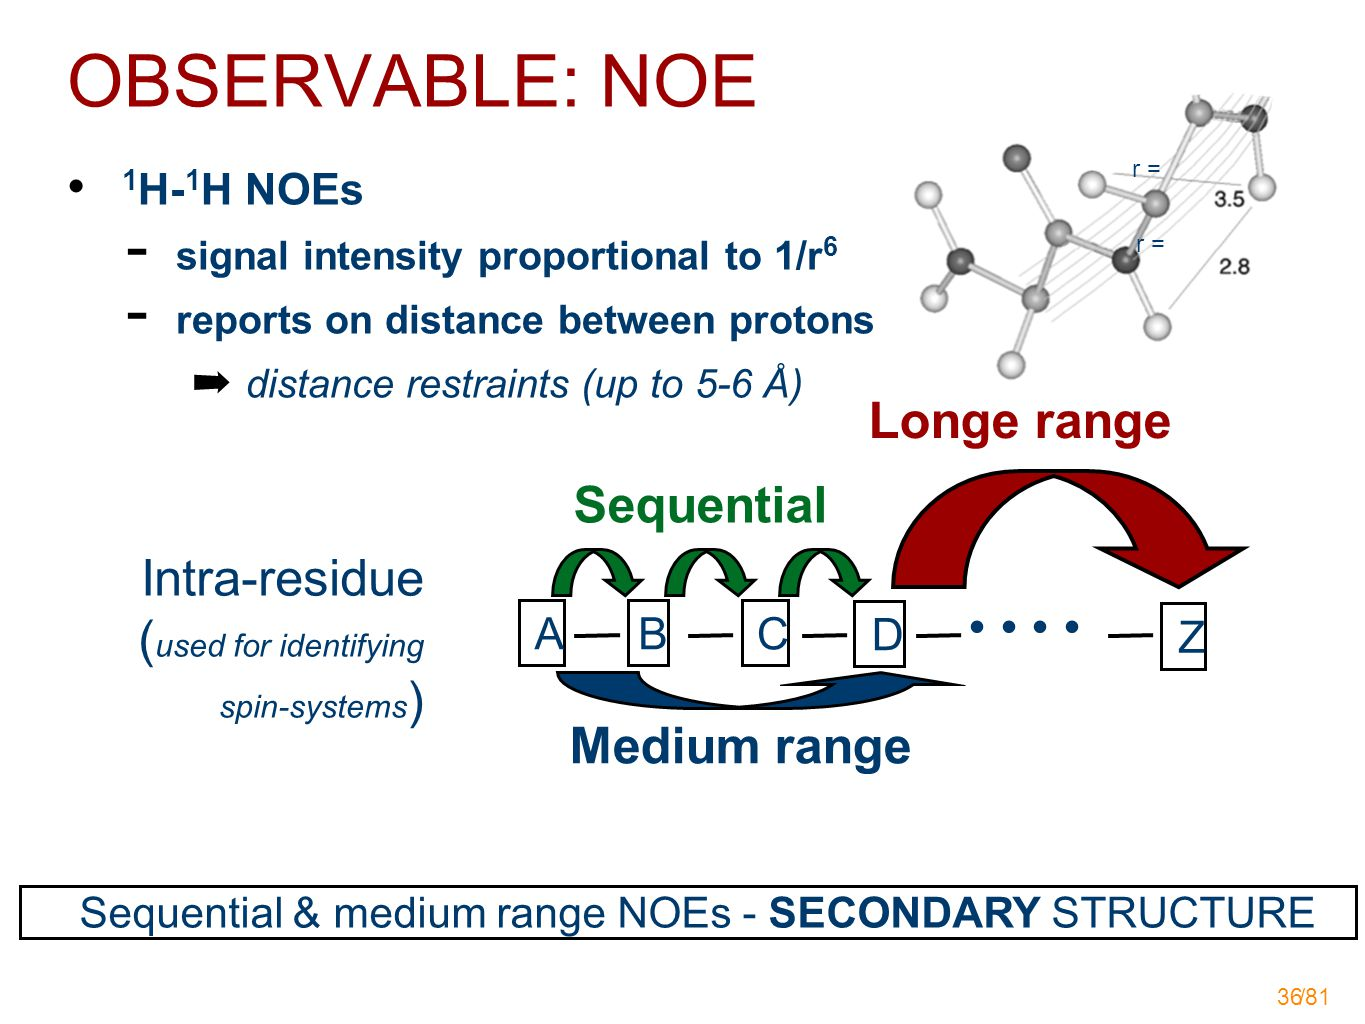 /81 36 1 H- 1 H NOEs  signal intensity proportional to 1/r 6  reports on distance between protons ➡ distance restraints (up to 5-6 Å) Sequential ABC D Z Intra-residue ( used for identifying spin-systems ) Medium range Sequential & medium range NOEs - SECONDARY STRUCTURE OBSERVABLE: NOE Longe range r =